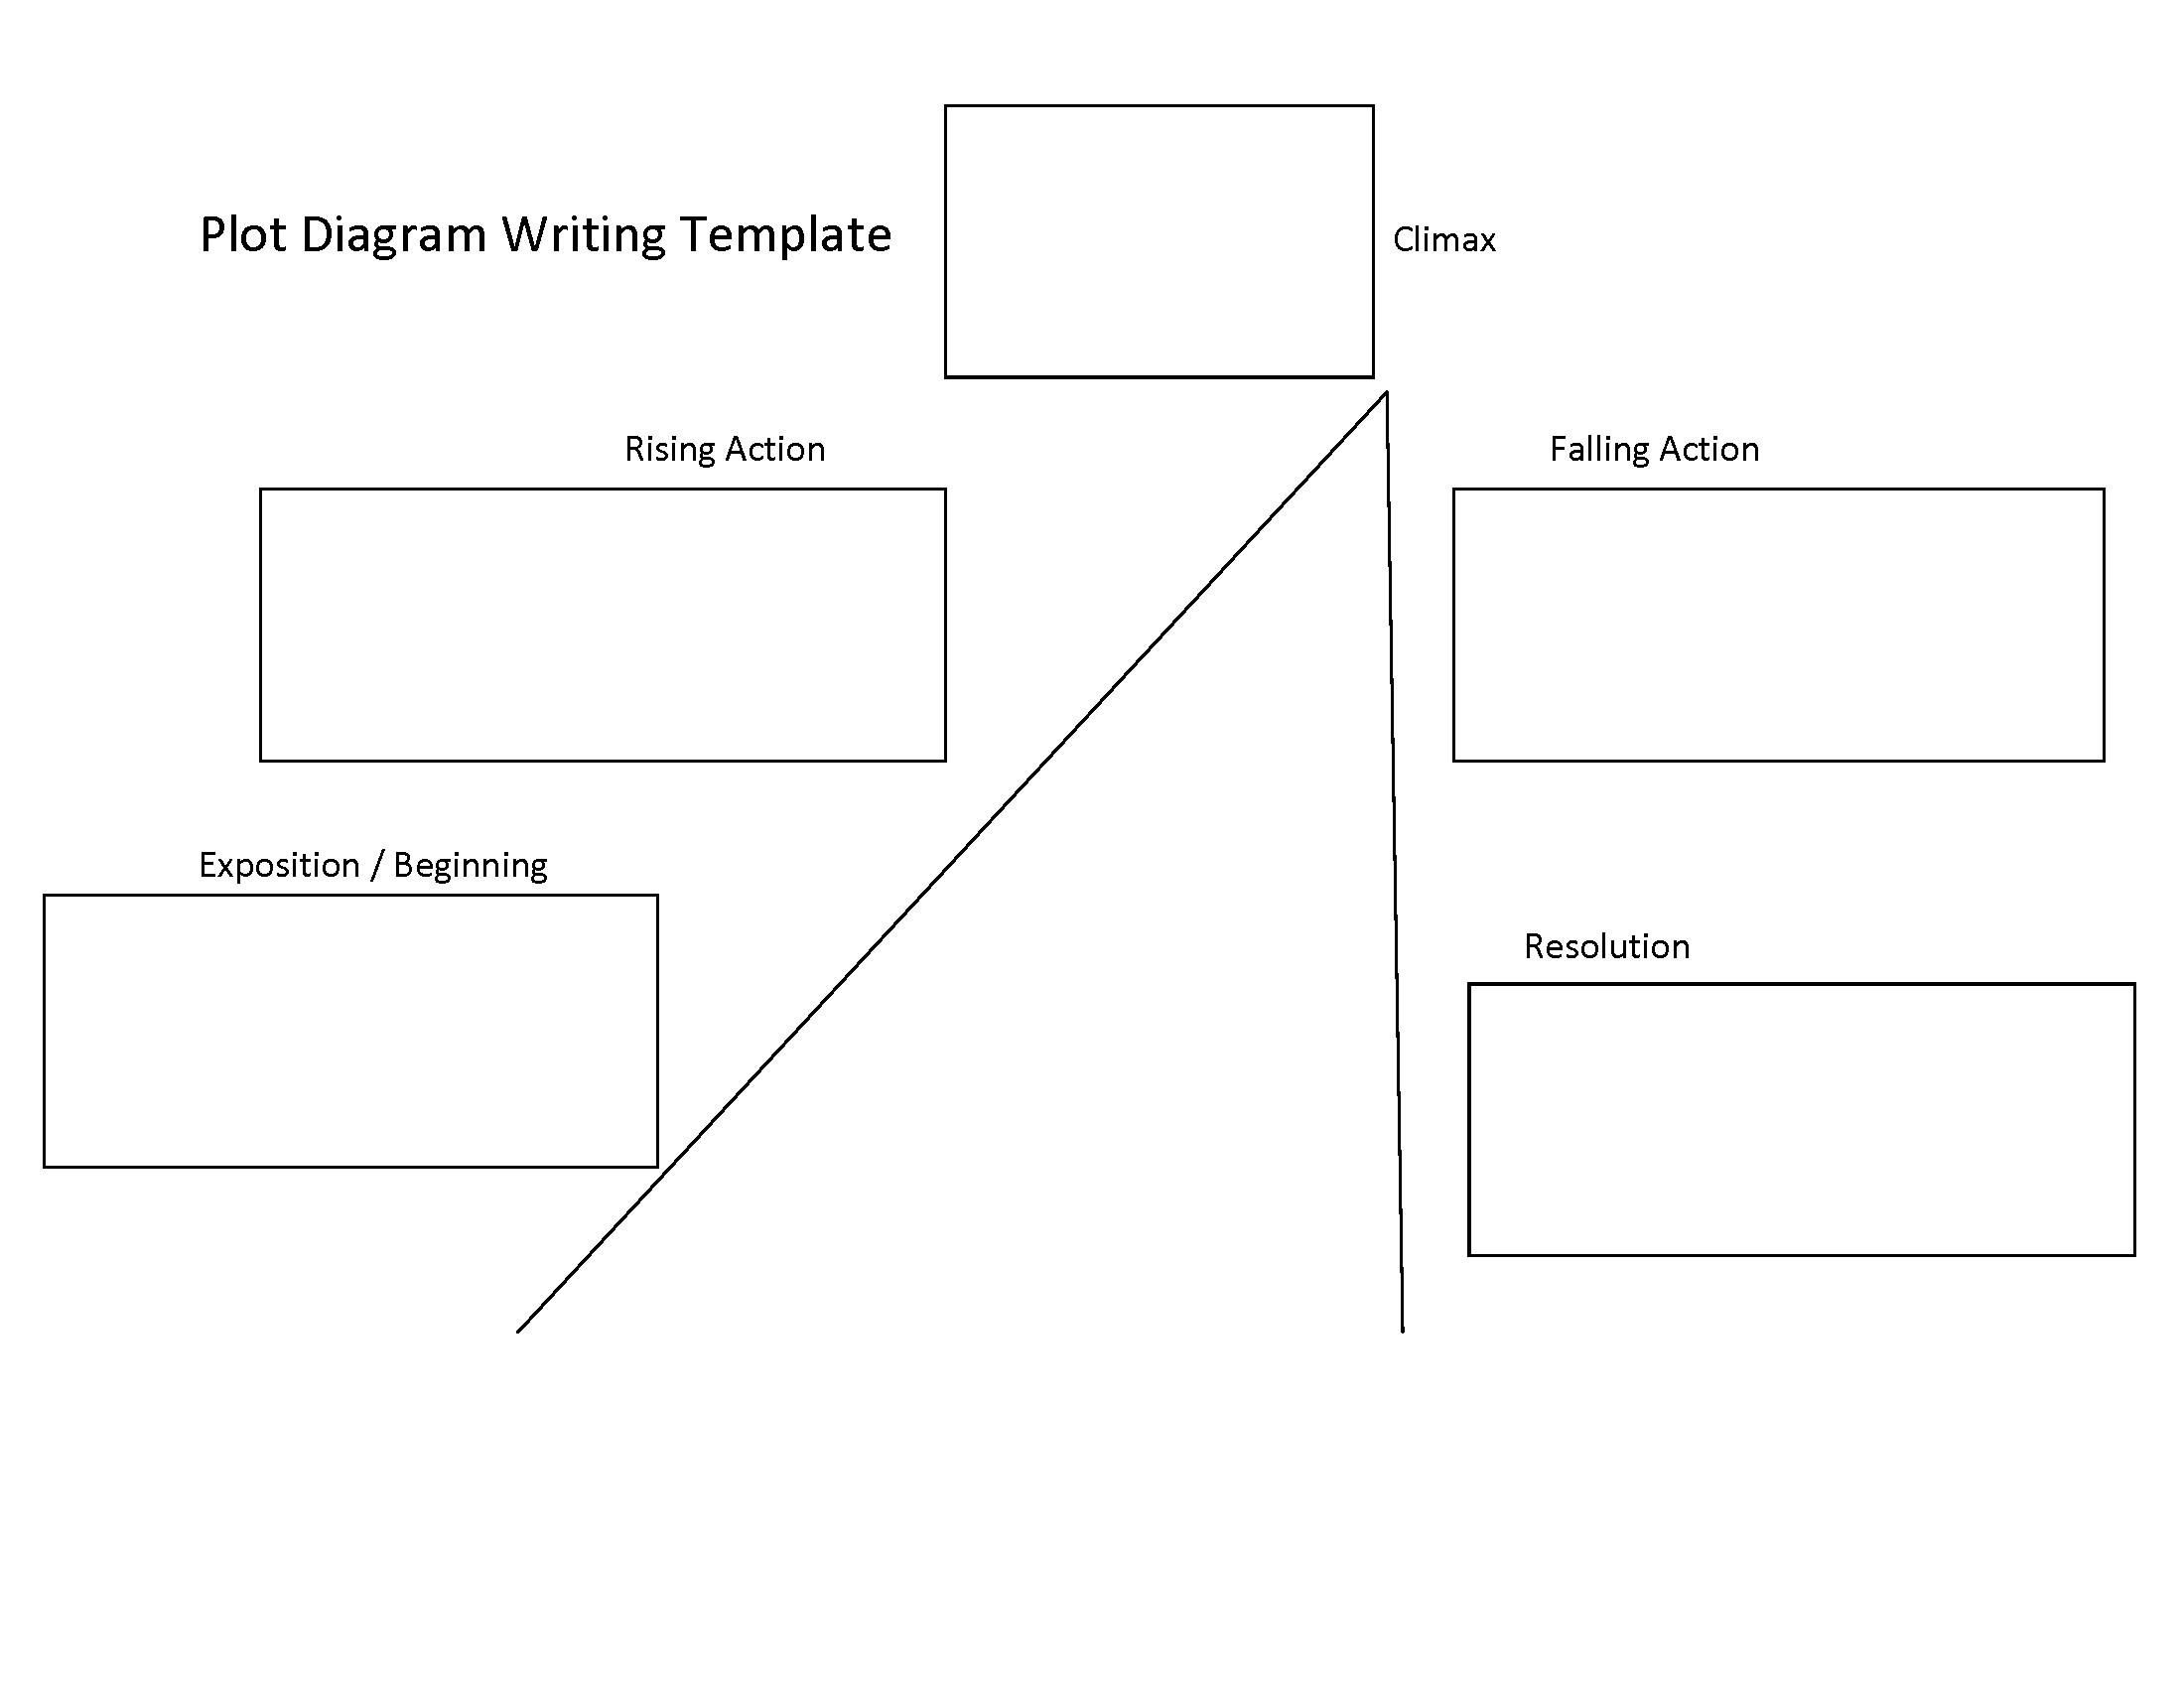 Plot Diagram Writing Template Worksheet